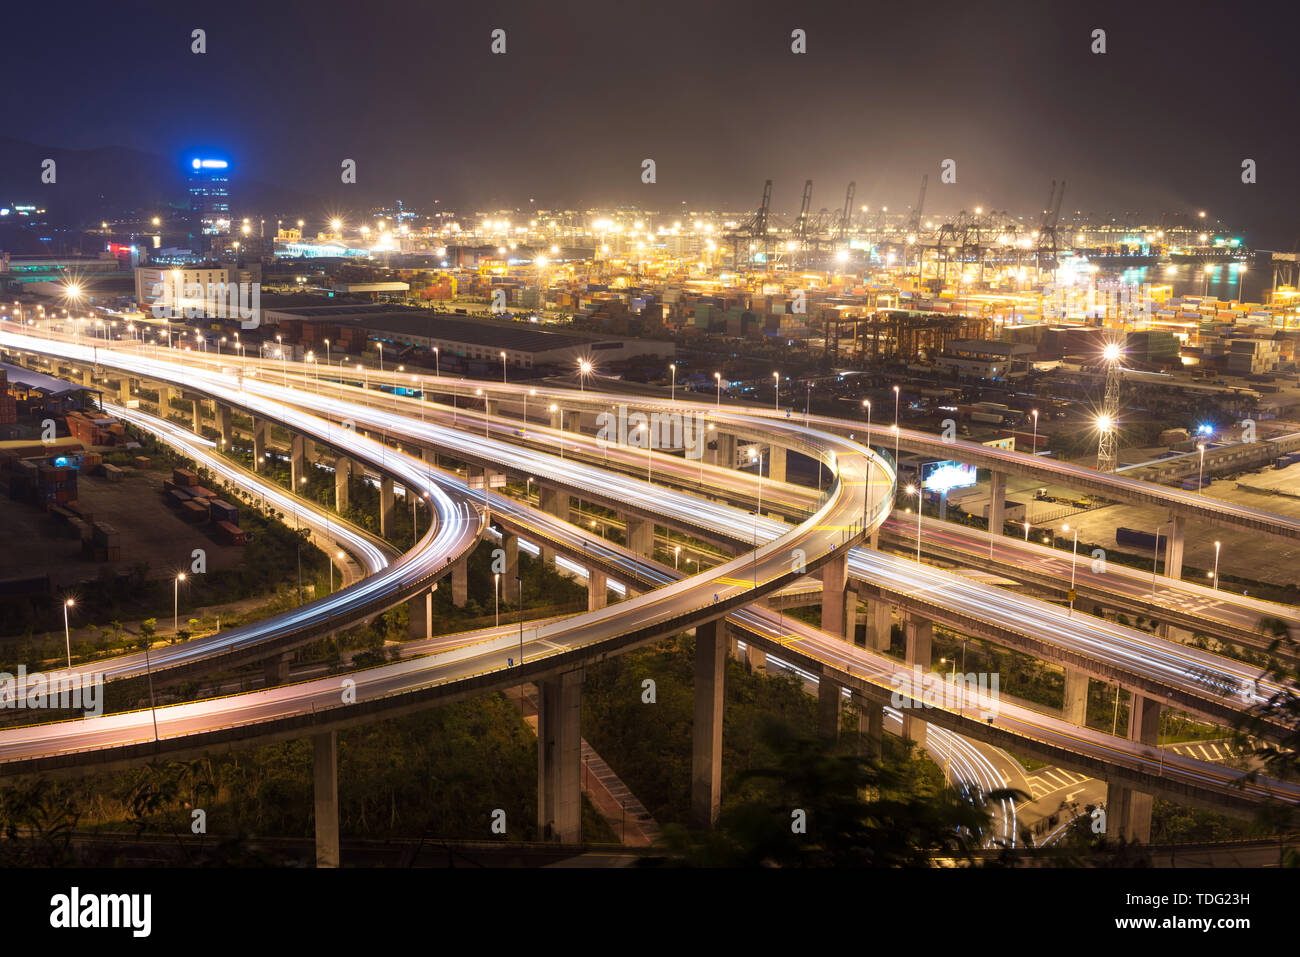 Illuminated and elevated expressway and cityscape at night - Stock Image